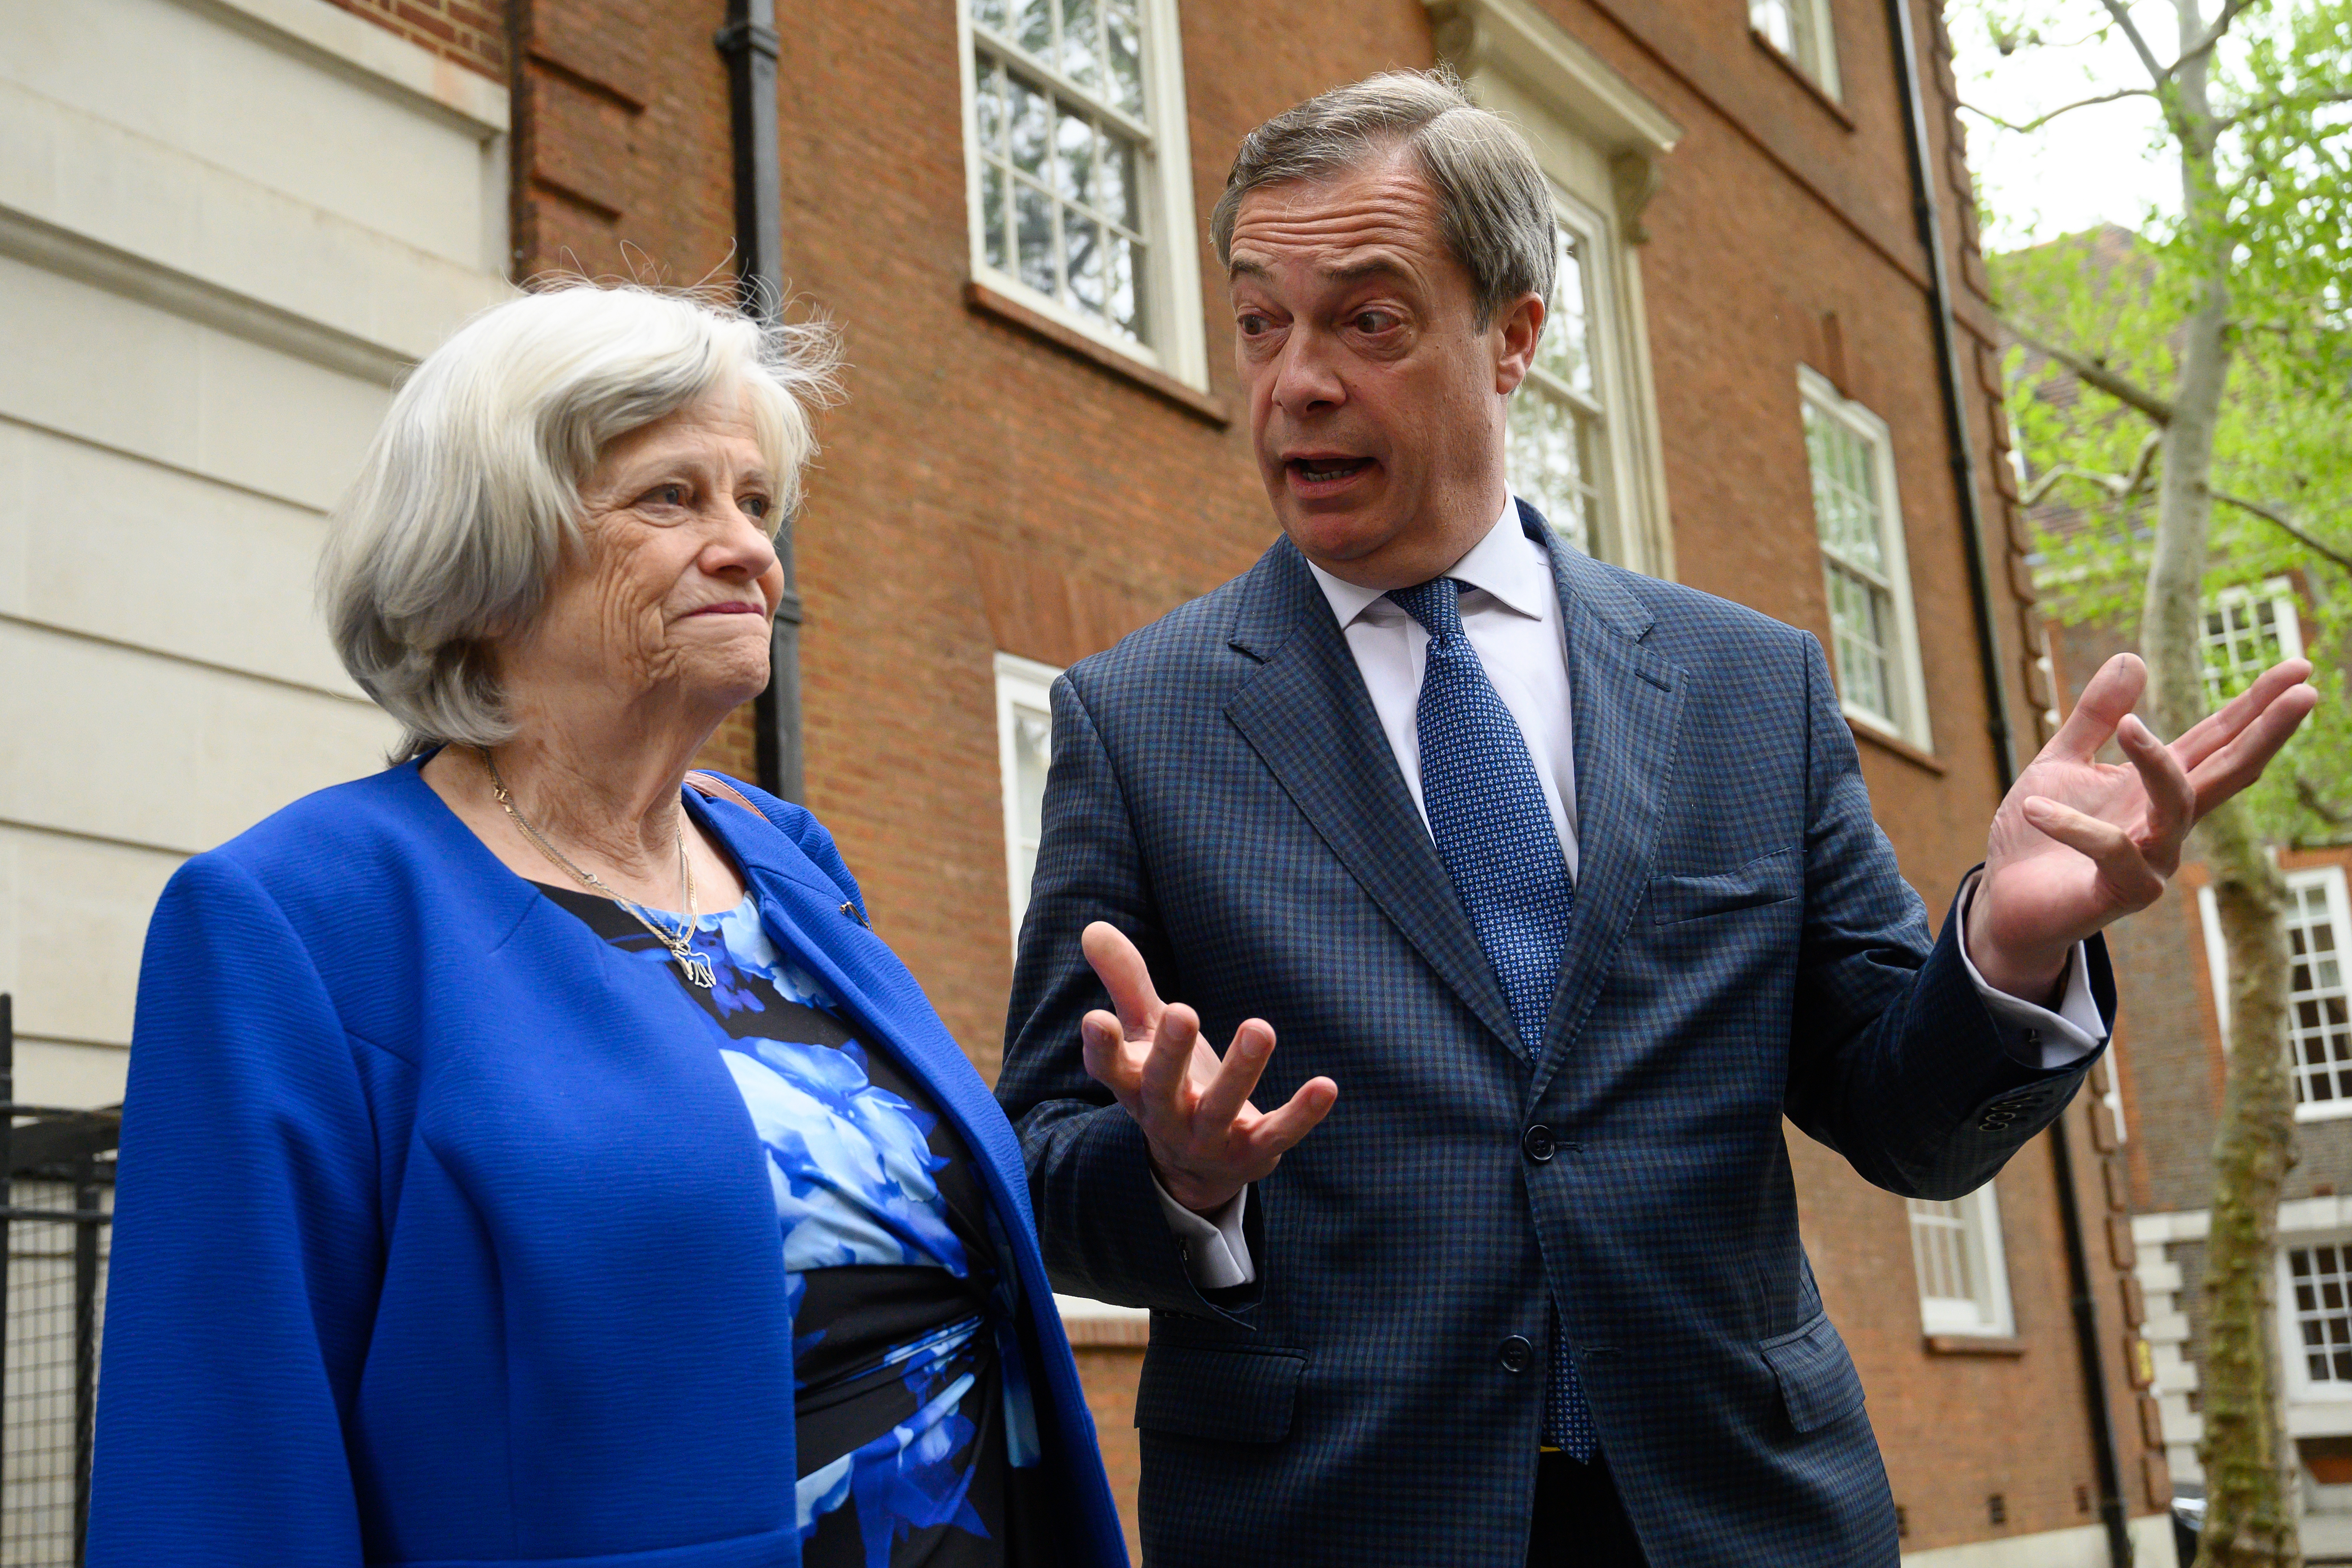 Ann Widdecombe and Nigel Farage of the Brexit Party